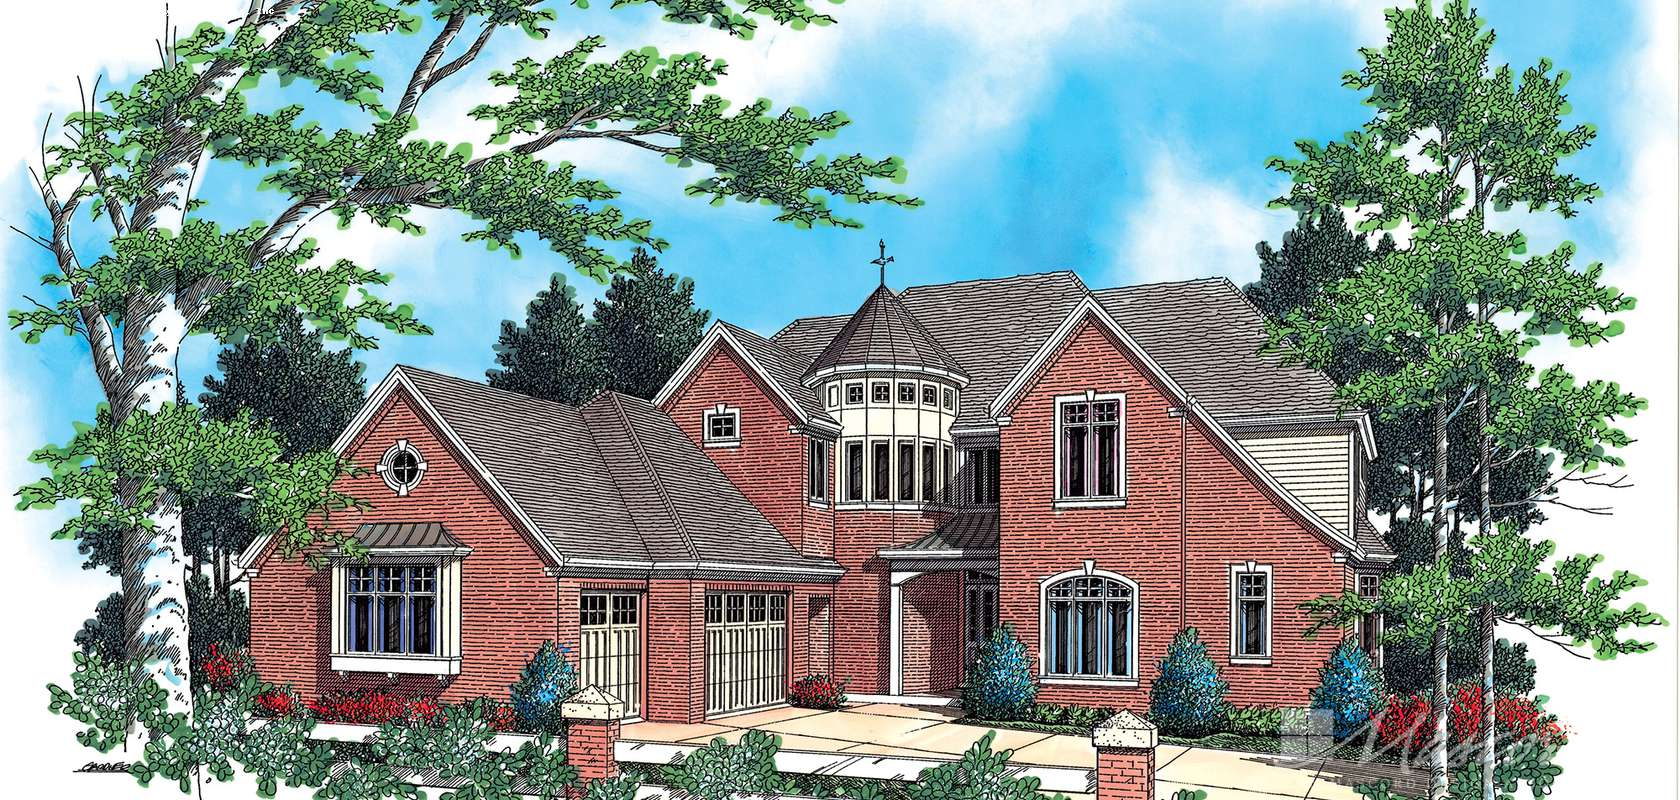 Mascord House Plan 2354: The Findlay